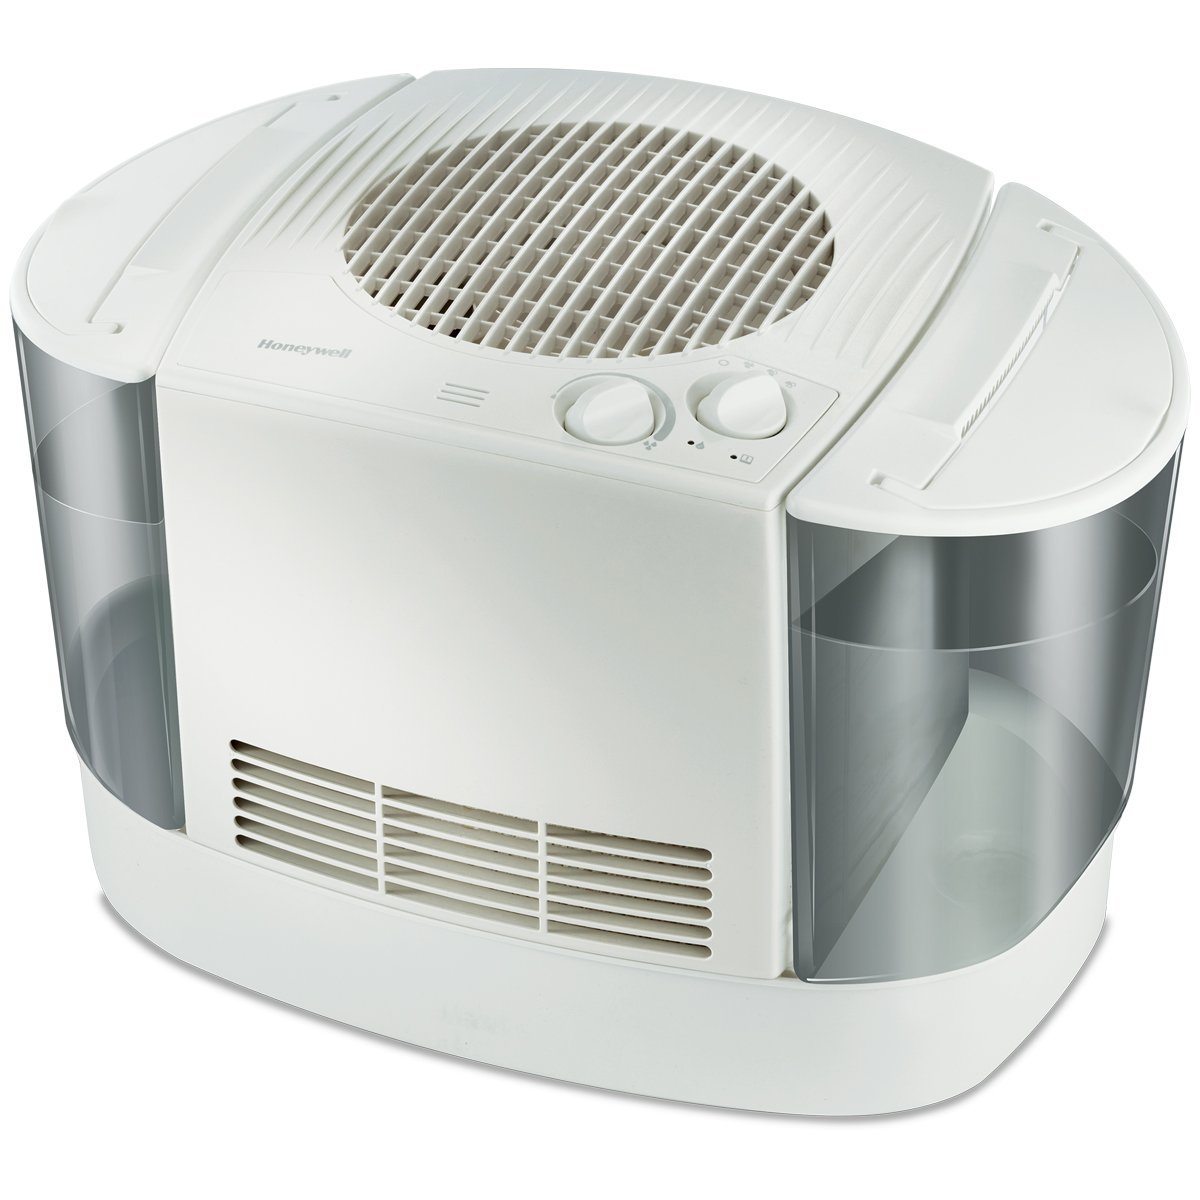 Honeywell HEV685W Top Fill Console Humidifier, White by Honeywell